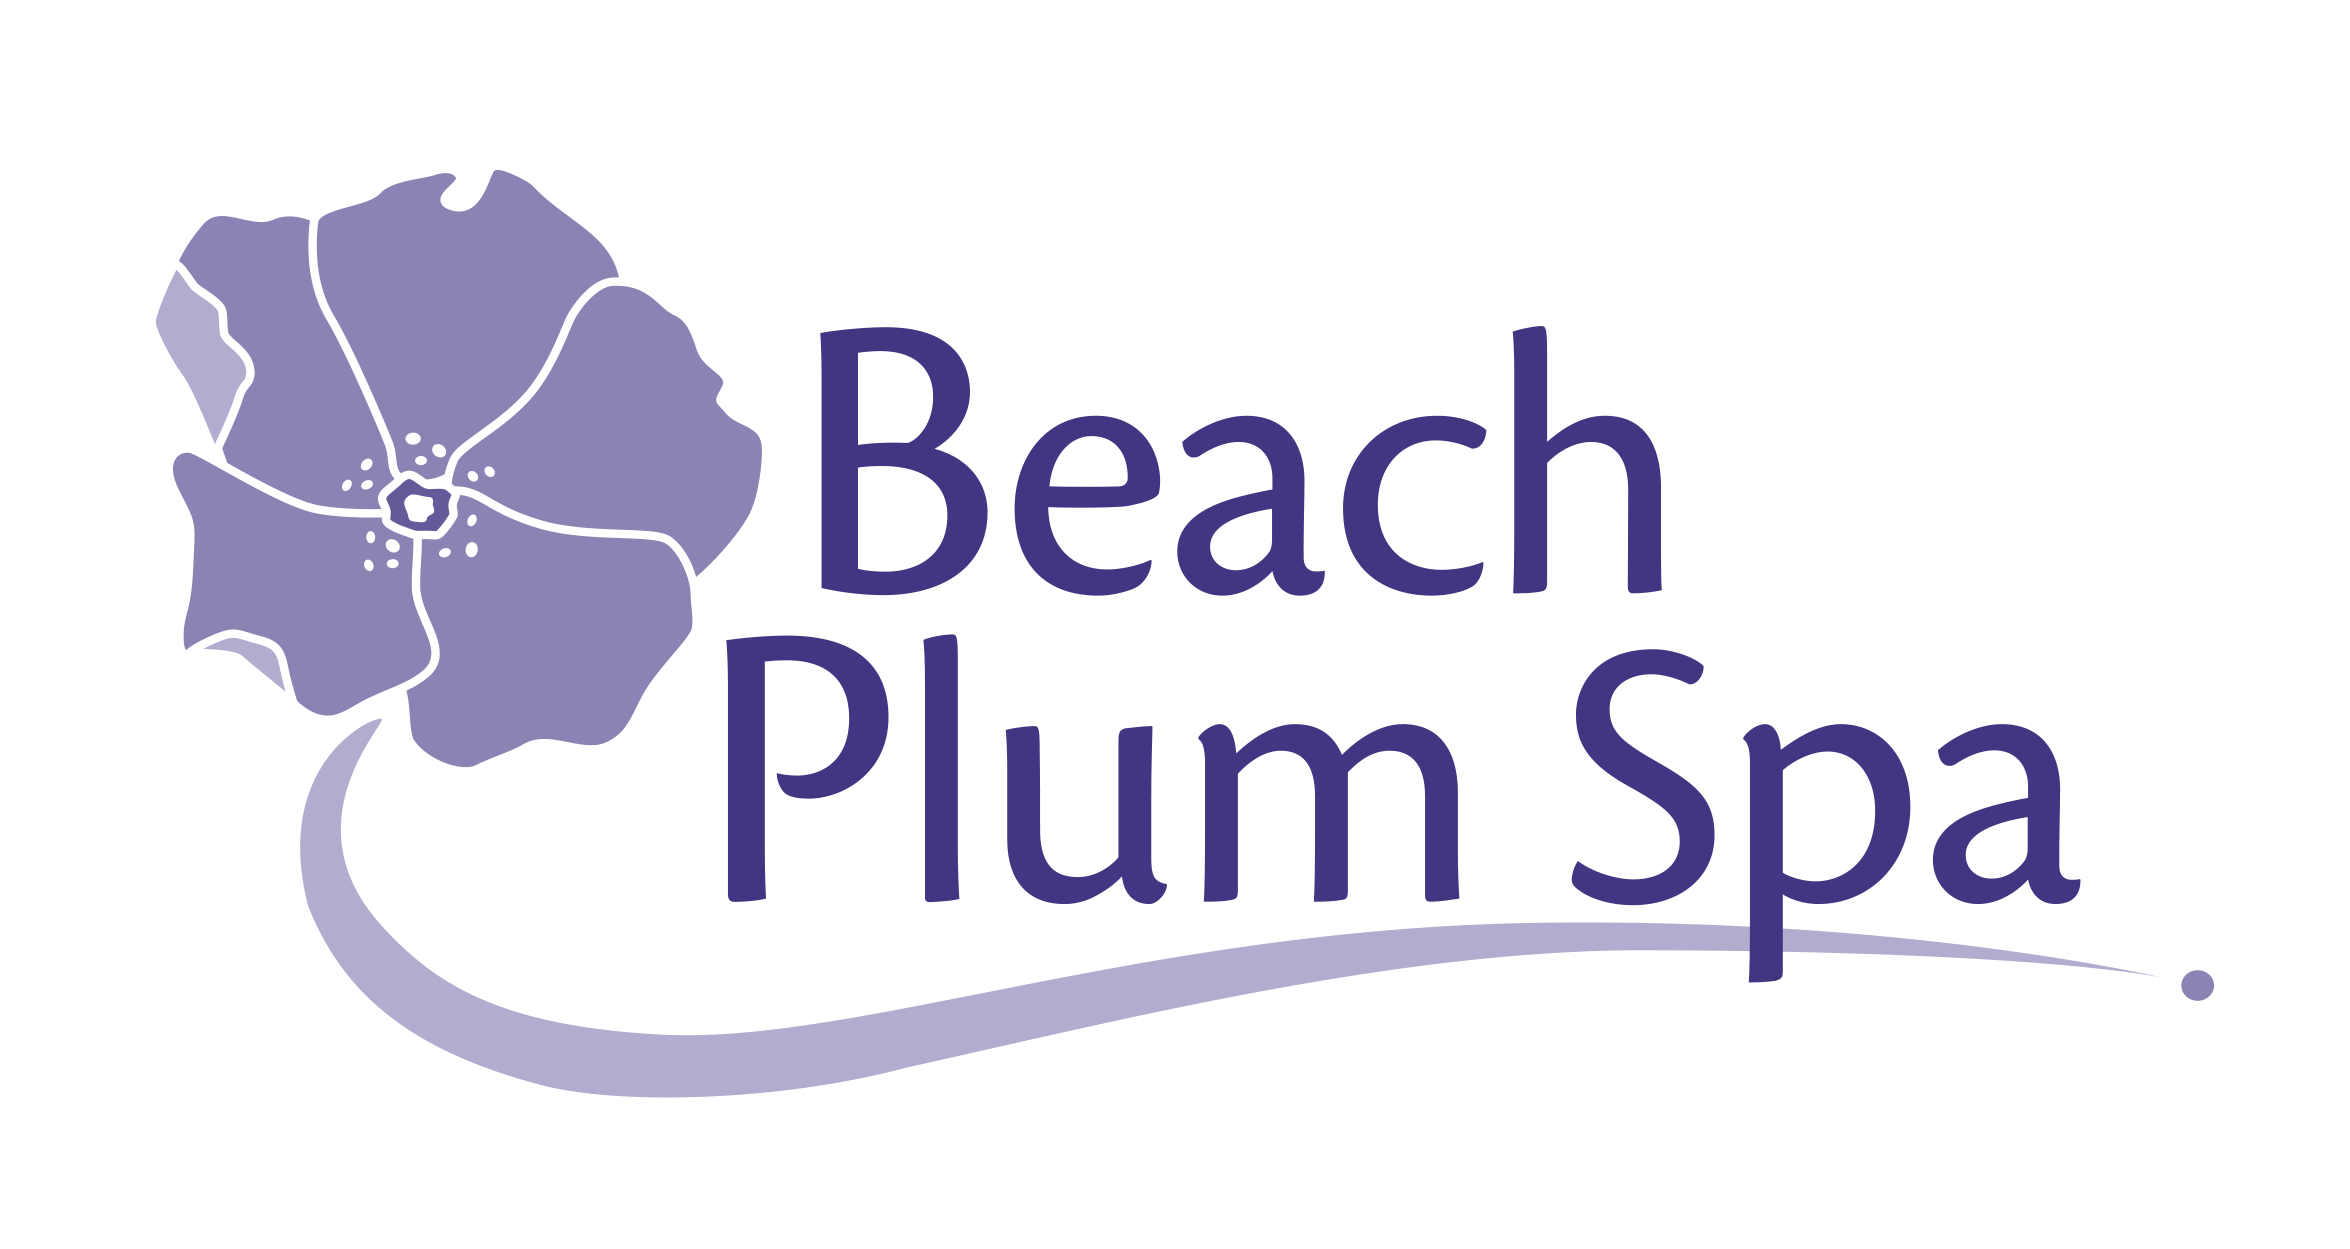 Beach Plum Spa Website